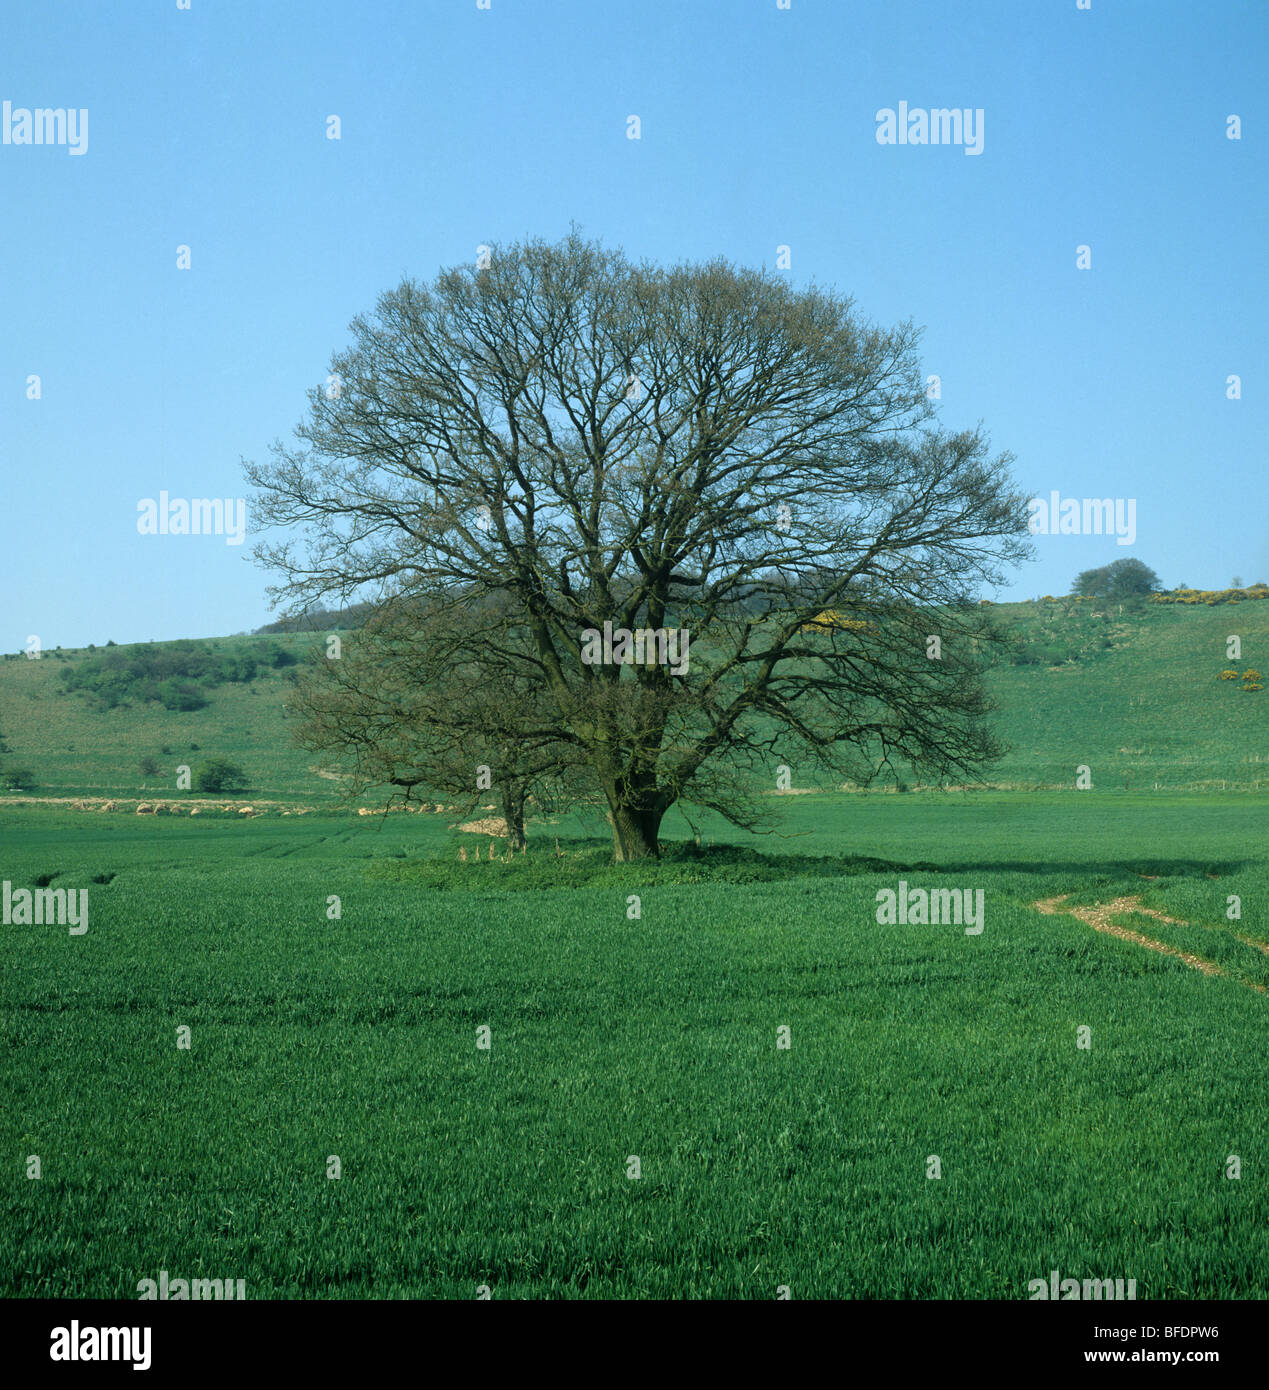 Single oak tree (Quercus robur) with green tinge of leaf buds in early spring in a young cereal crop - Stock Image